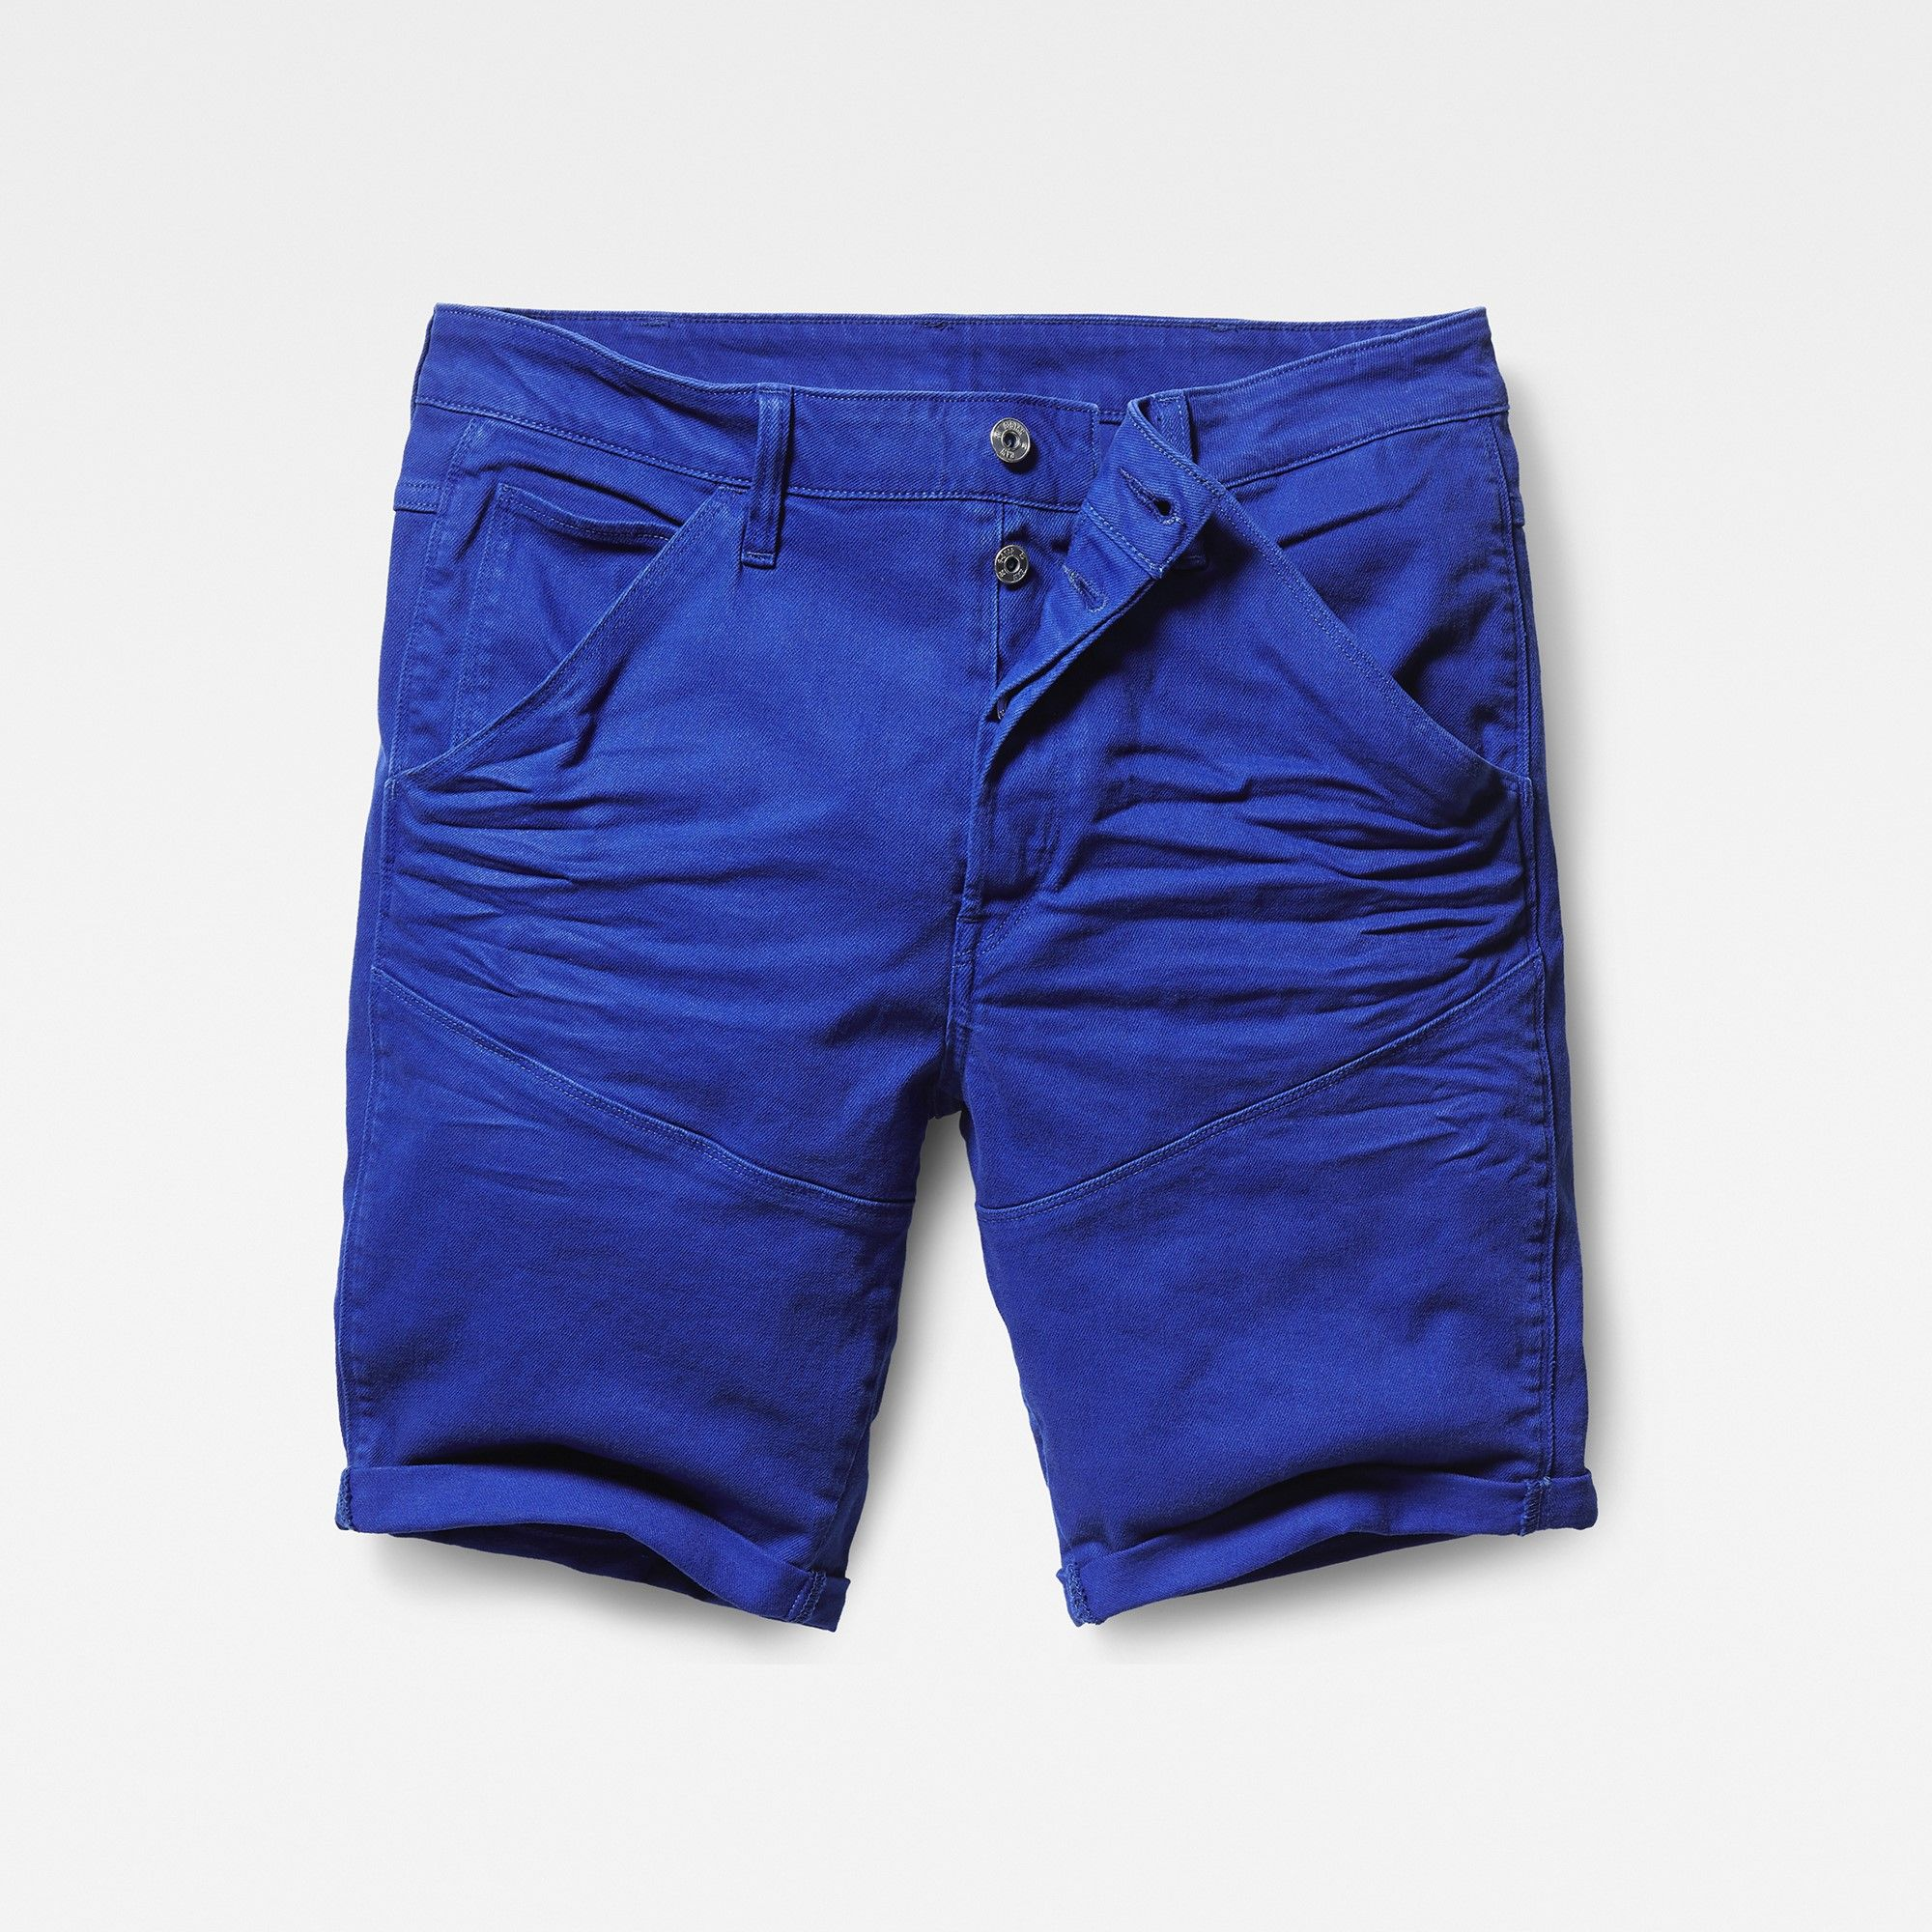 5621 3d Tapered 1 2 Shorts Mens Style Guide Mens Fashion Mens Street Style [ 2000 x 2000 Pixel ]